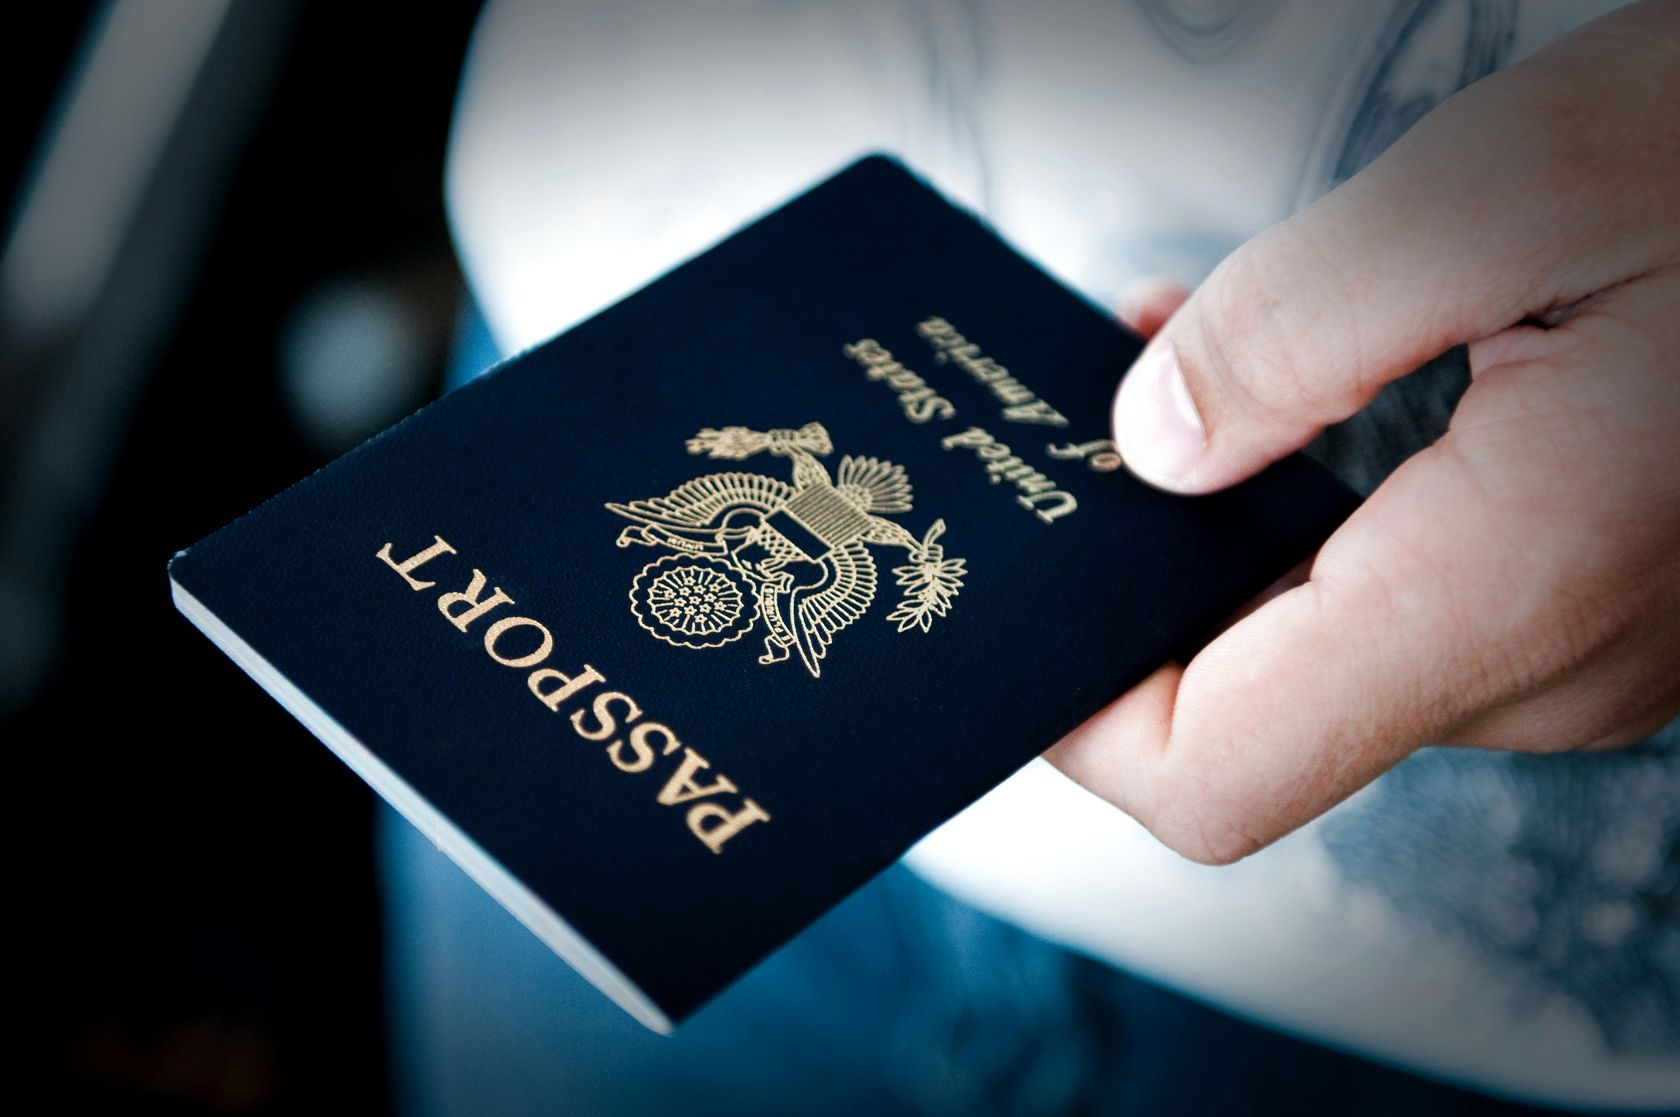 10313003 - image of a persons hand holding a passport